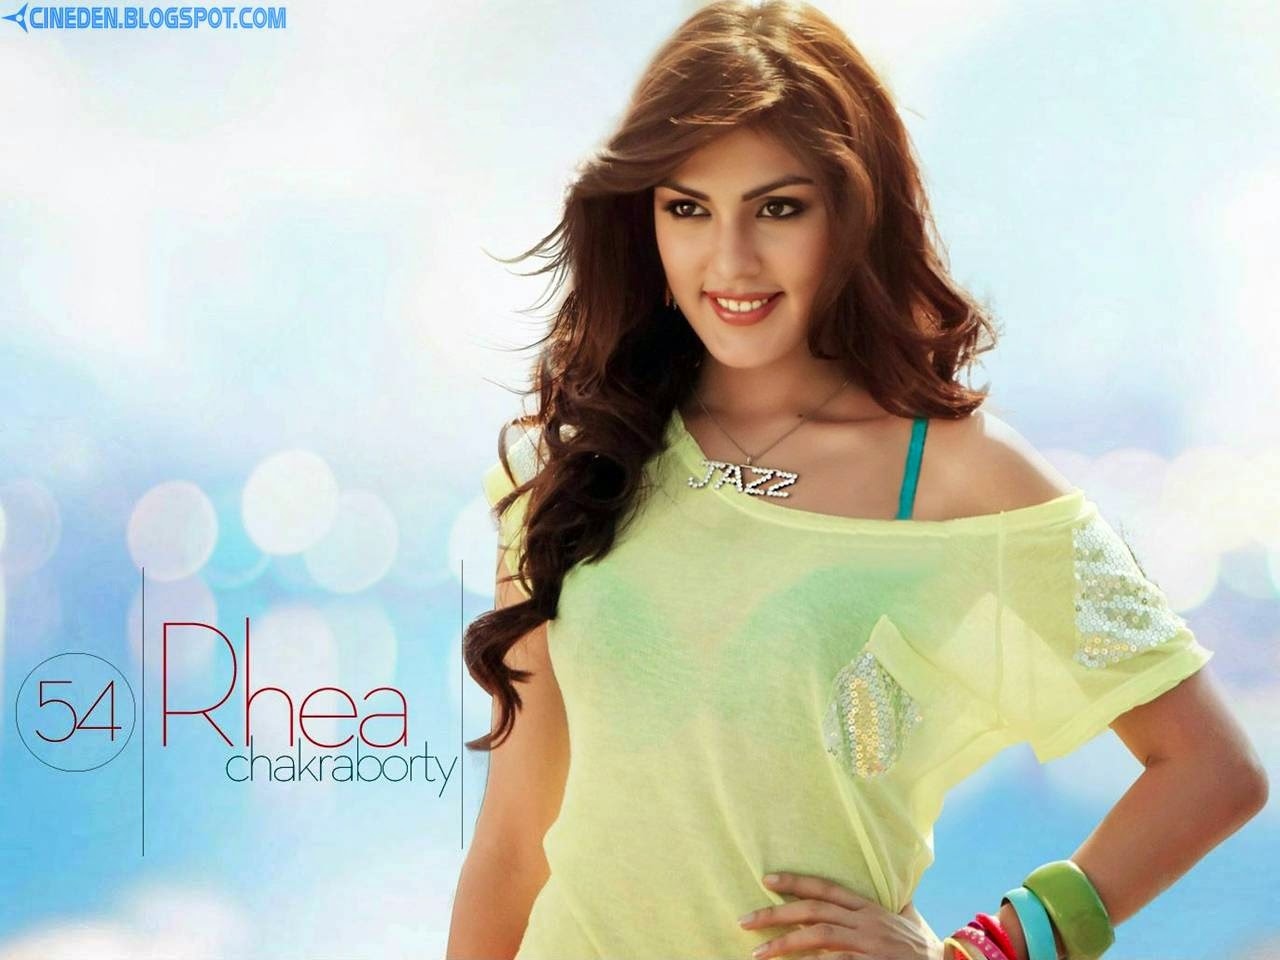 Rhea Chakraborty gets groped by a stranger! - CineDen